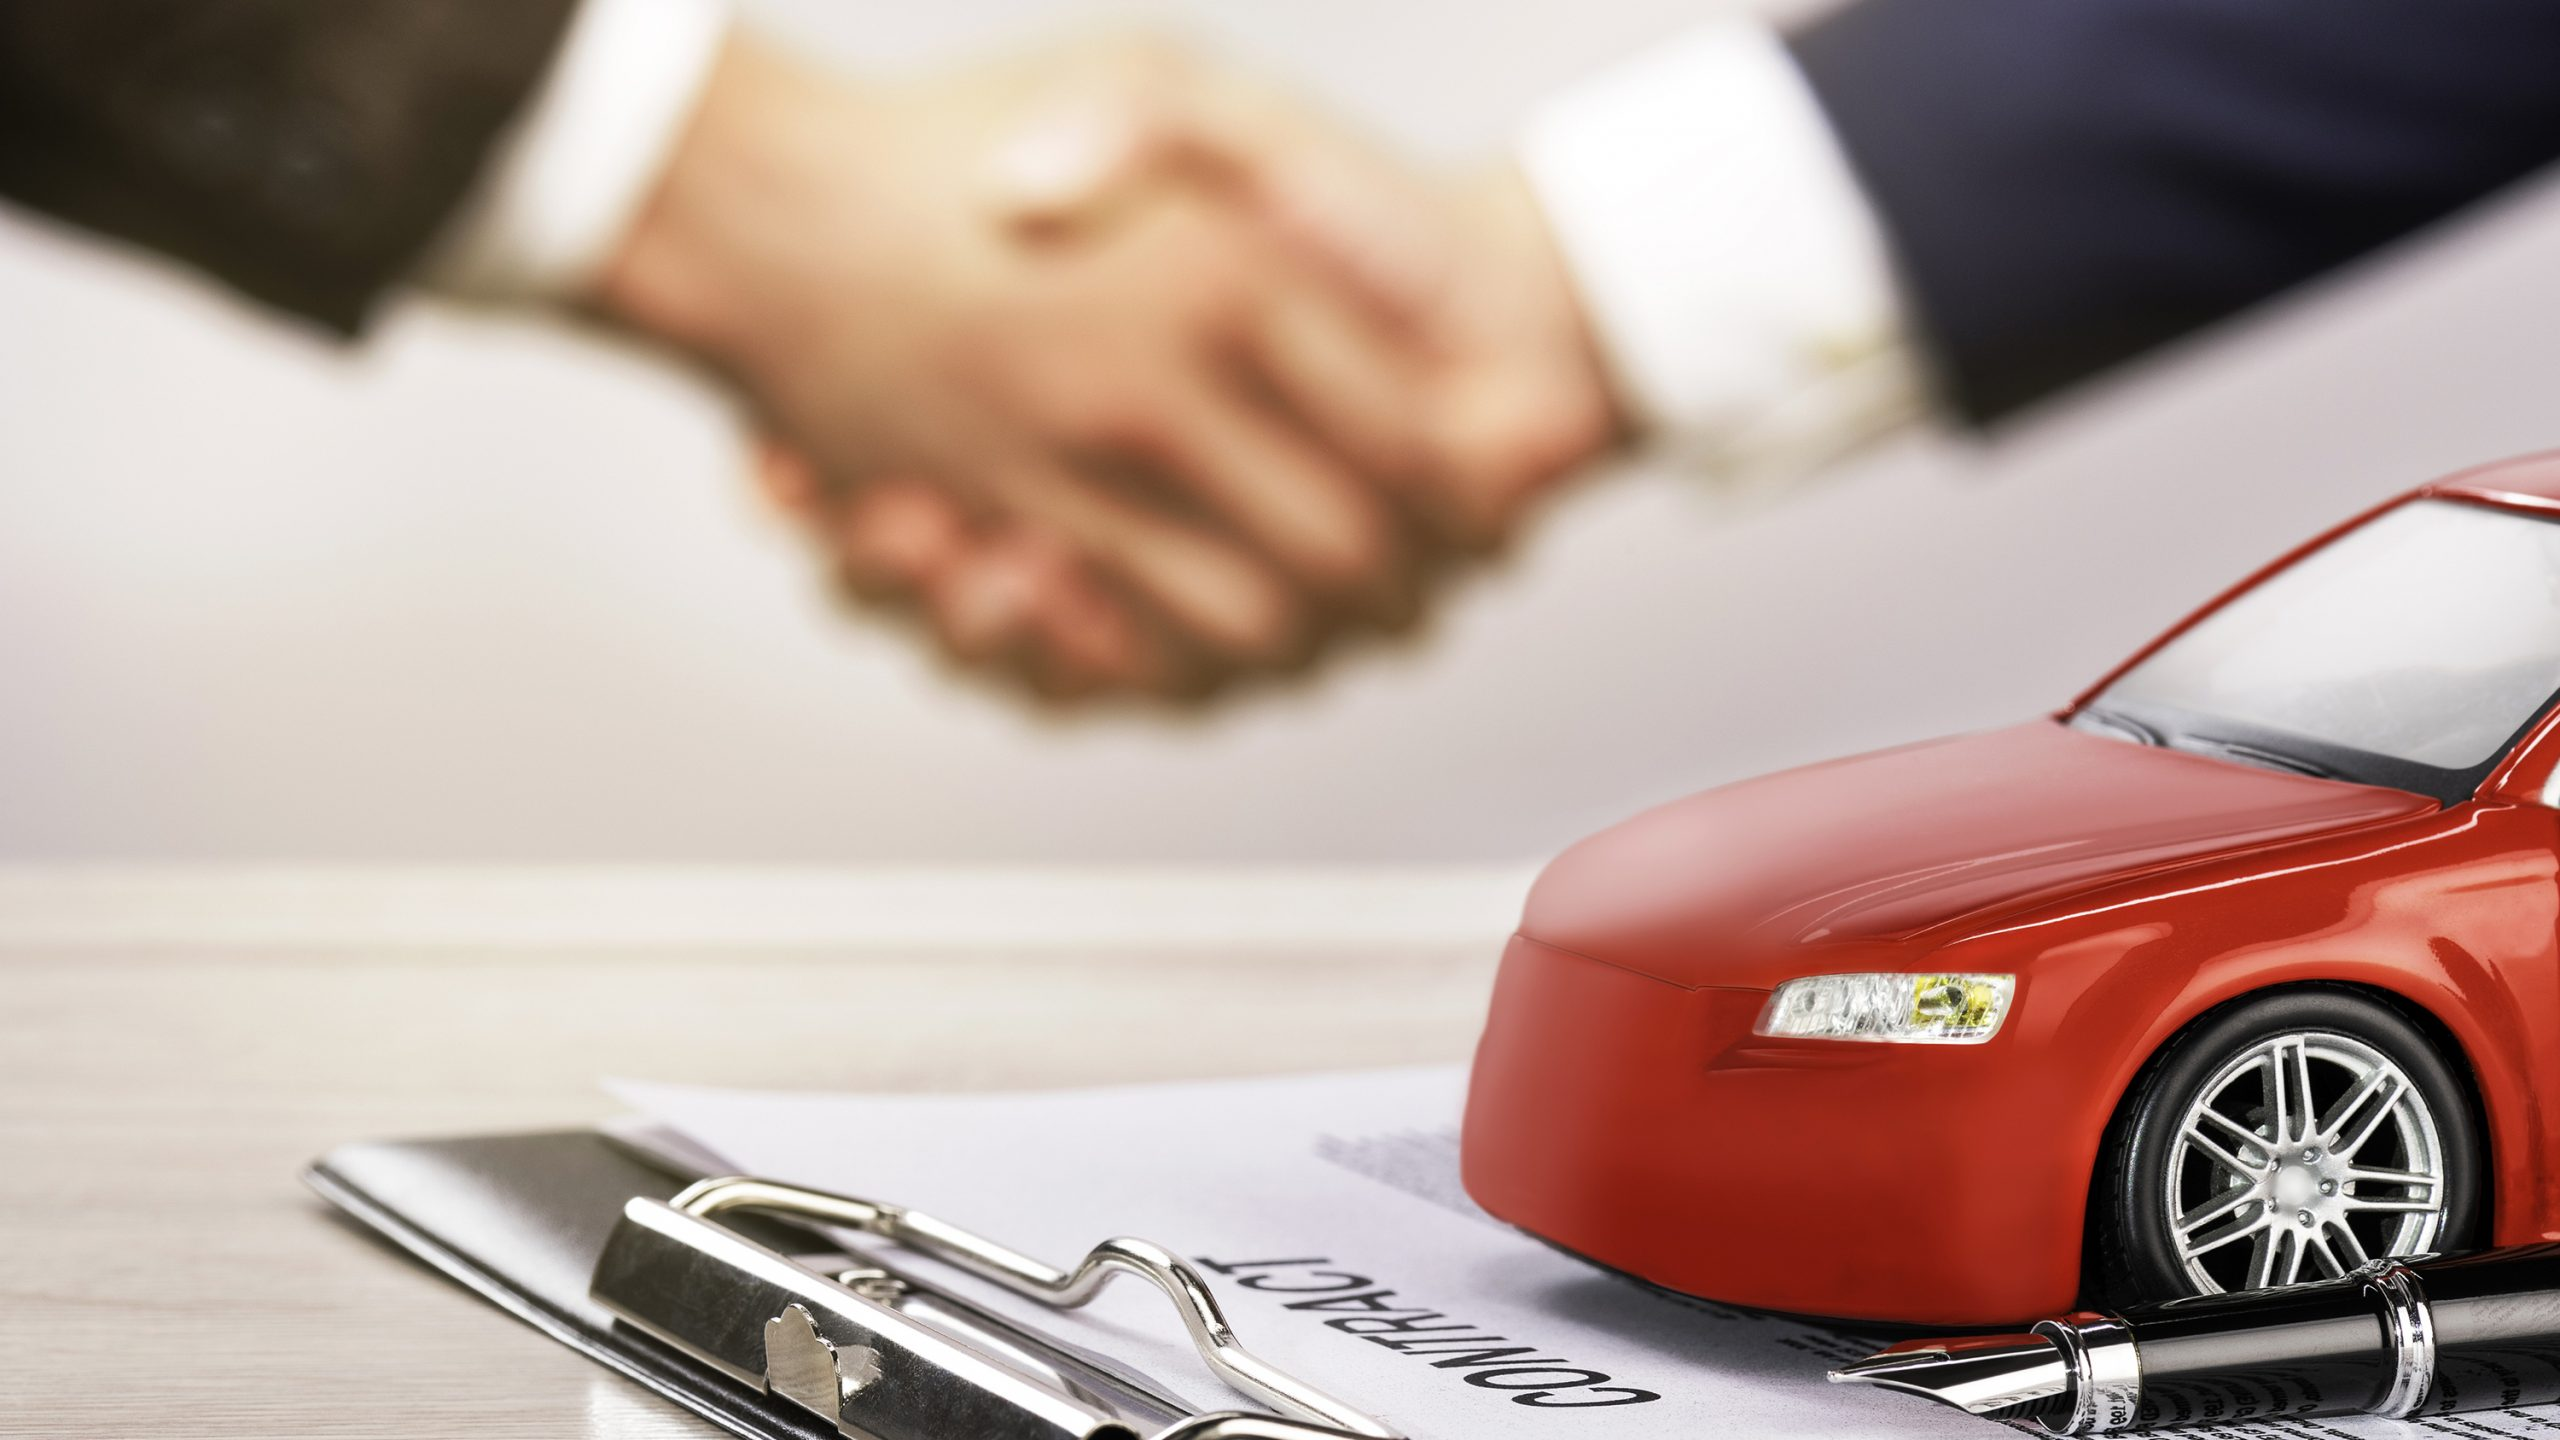 Is Getting An Auto Loan After A Foreclosure A Good Or Bad Idea?